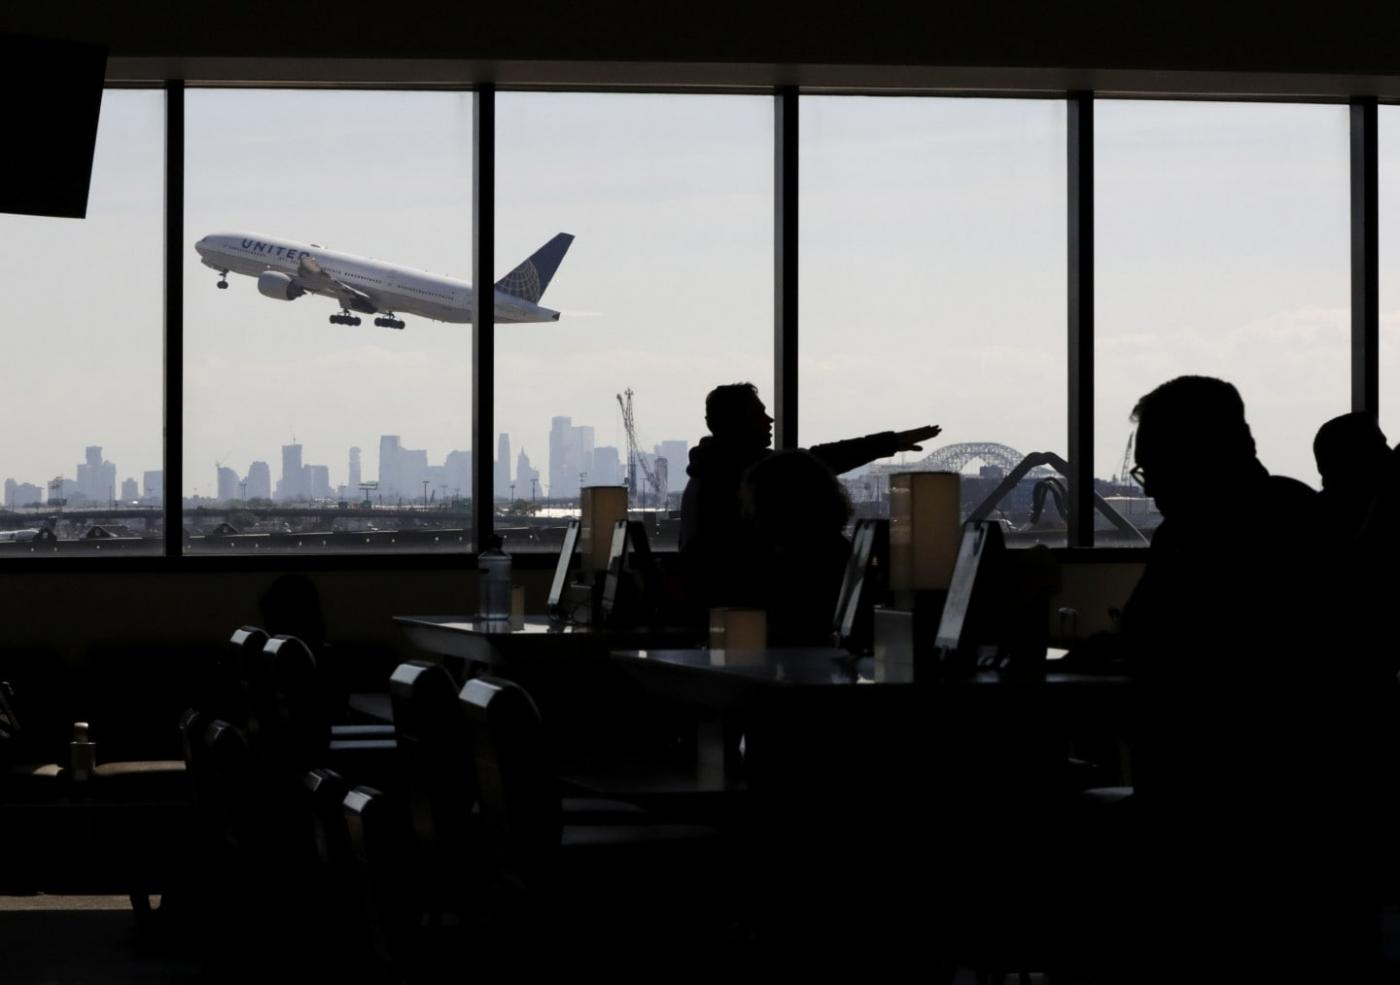 Muslims Improperly Placed on No-Fly List Urge Us Supreme Court to Allow Lawsuit